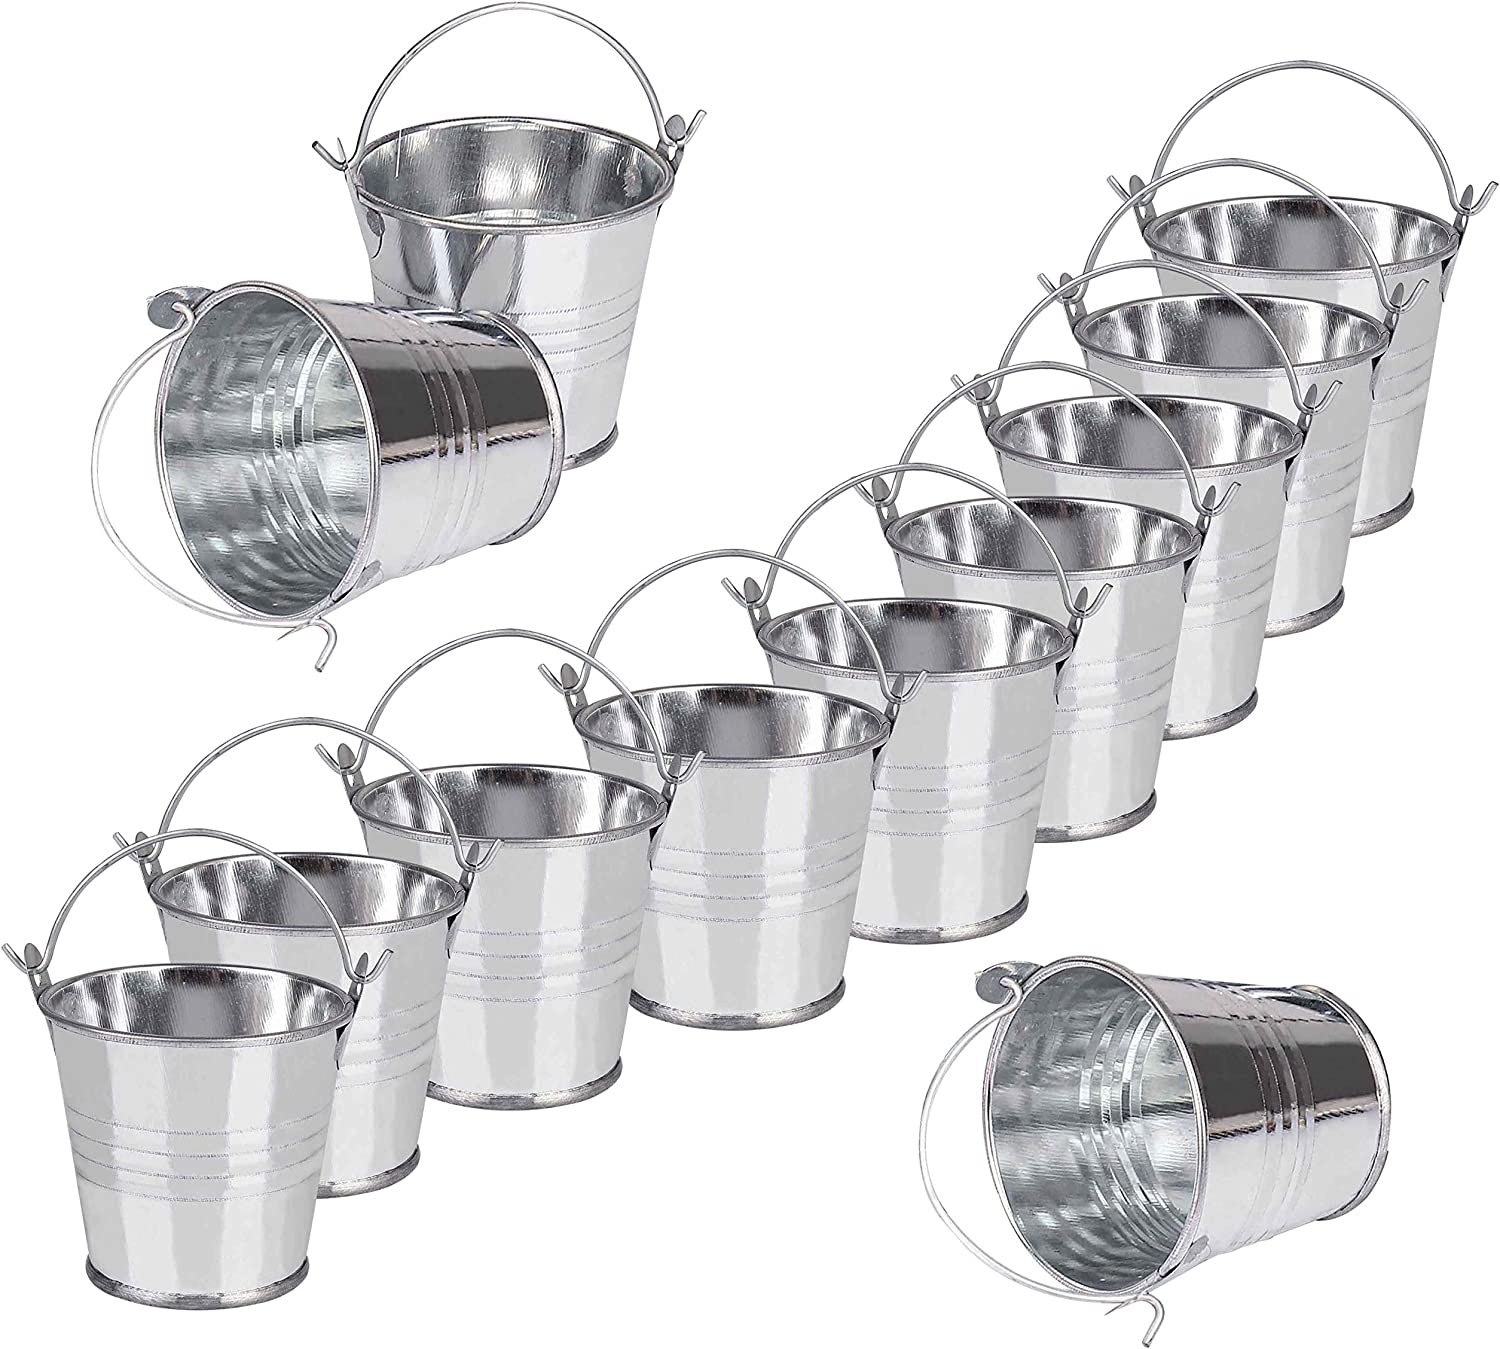 Mini Metal Buckets Tin Pails Galvanized Tinplate Container 3 for Gardening Plants Home Party Decoration 12Pack